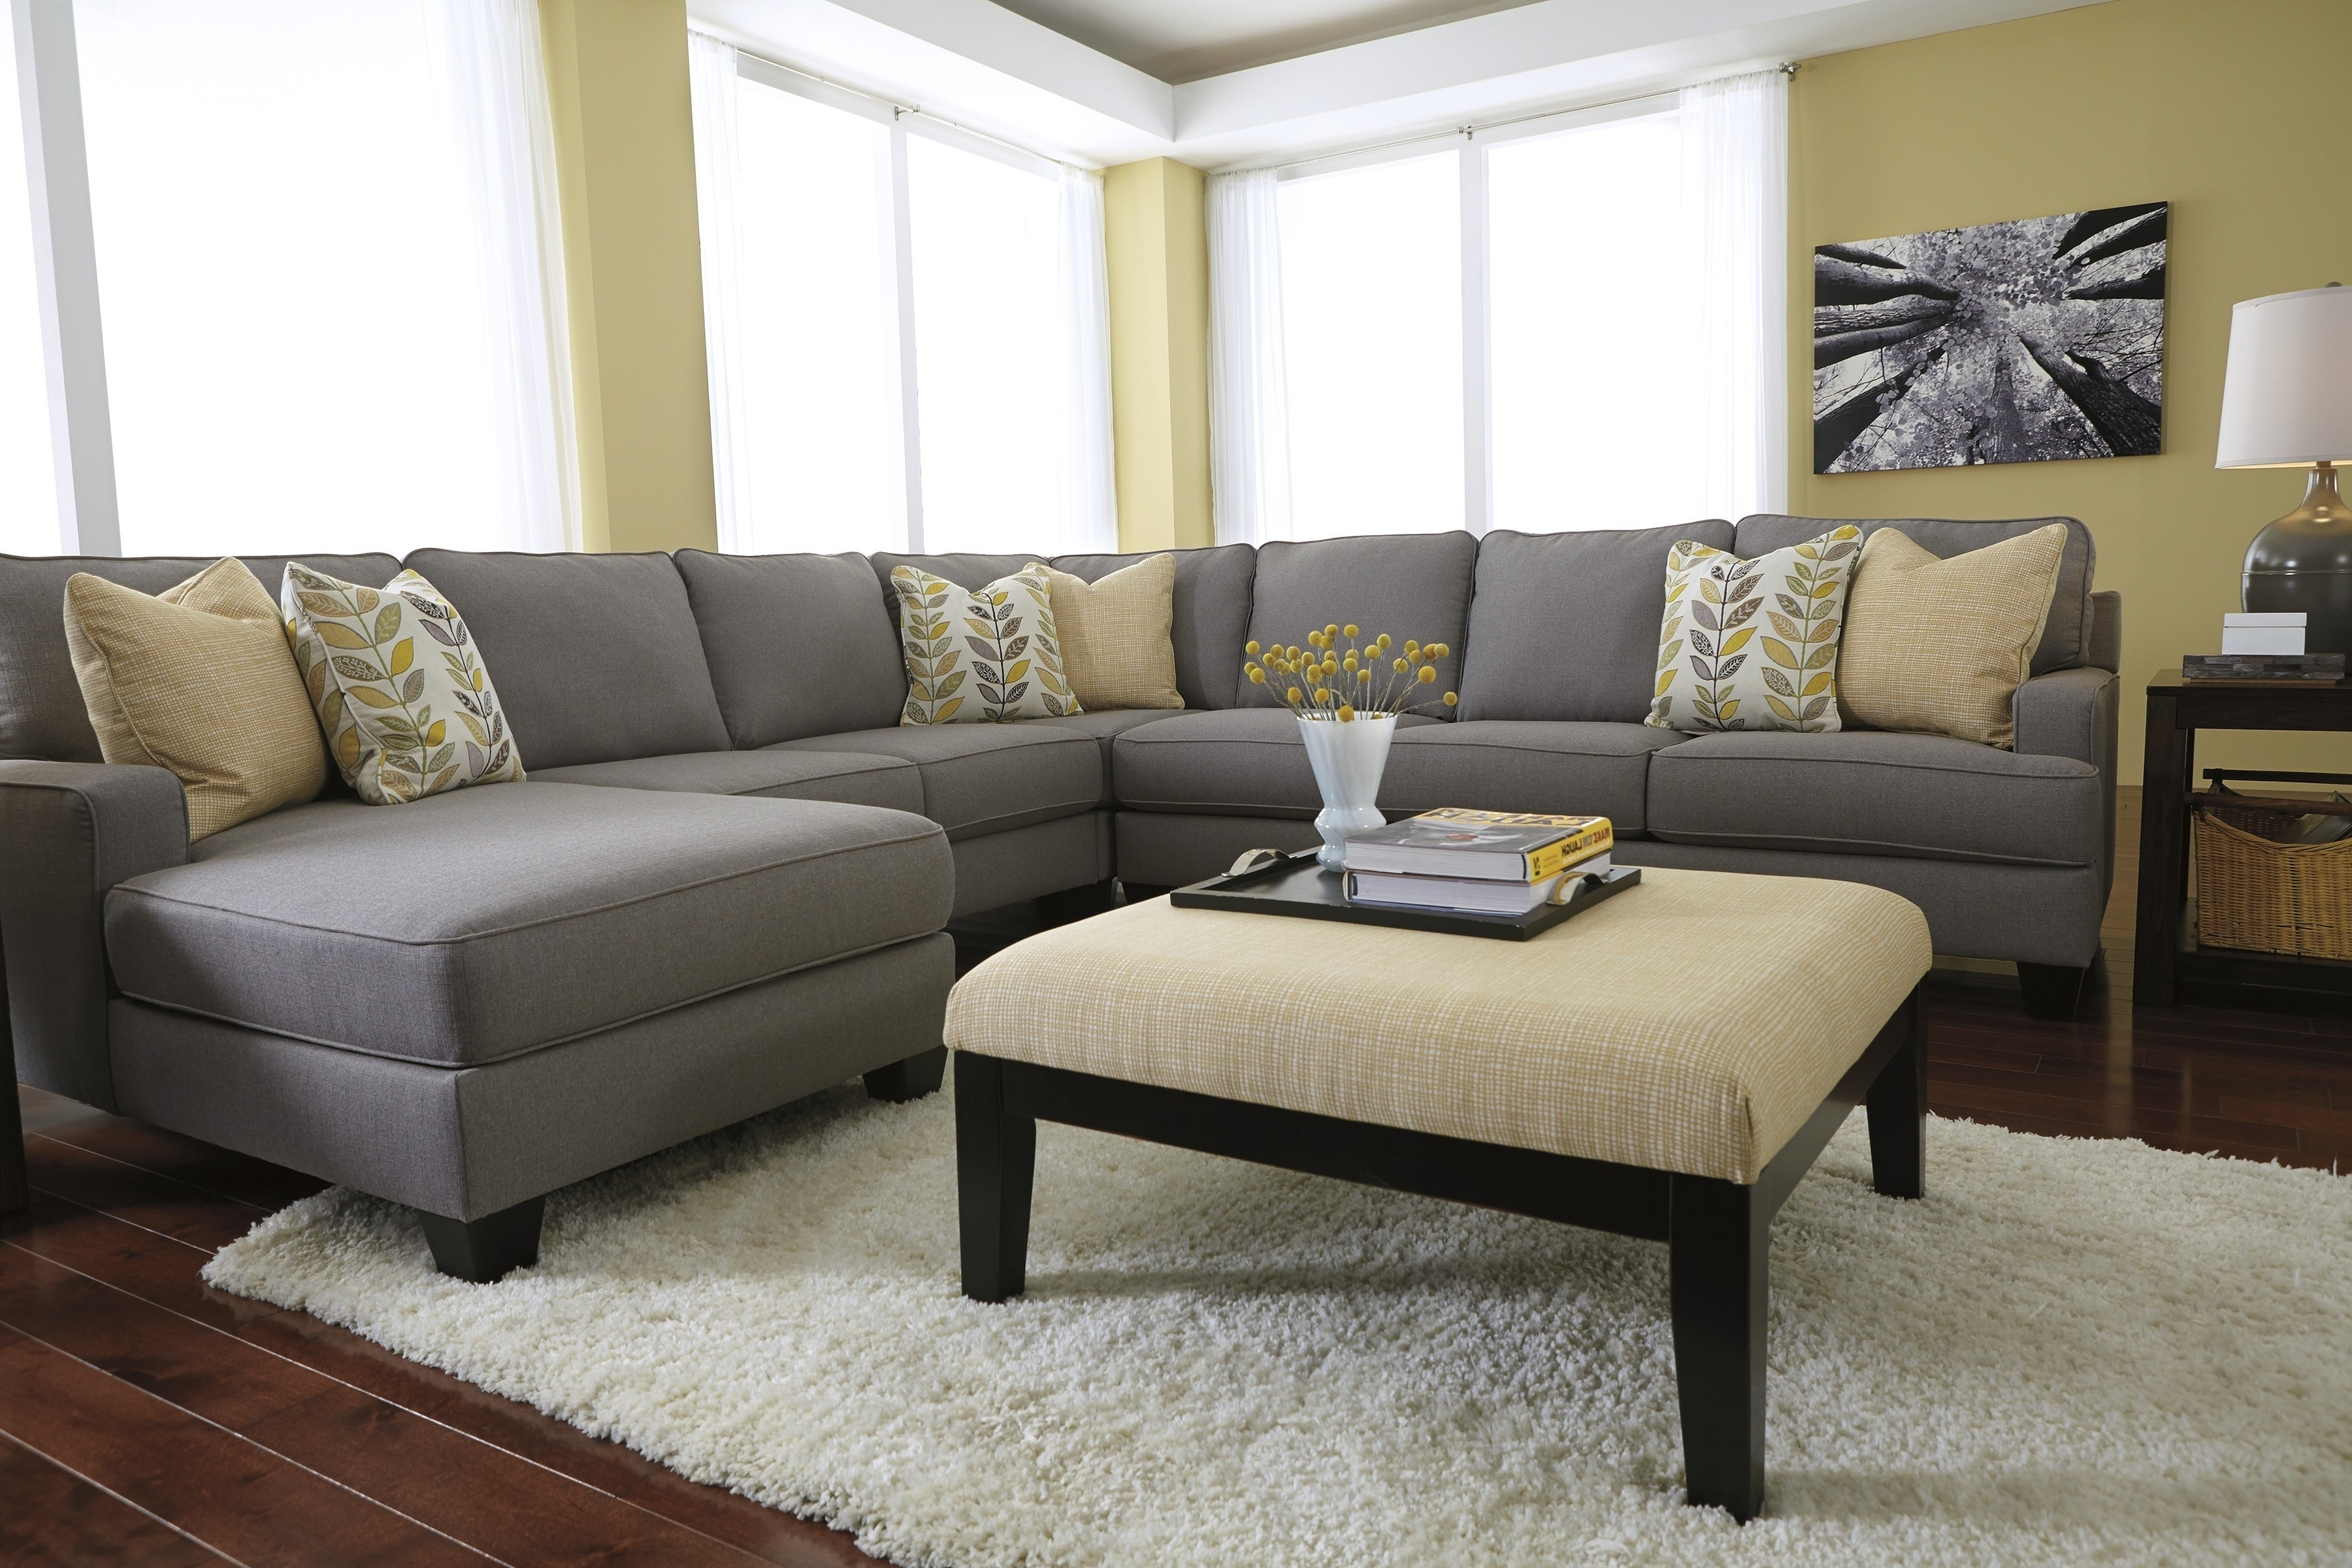 Living Room : Pillows For Sectional Sofa Oversized Couch Pillows Within Widely Used Sofas With Oversized Pillows (View 4 of 15)